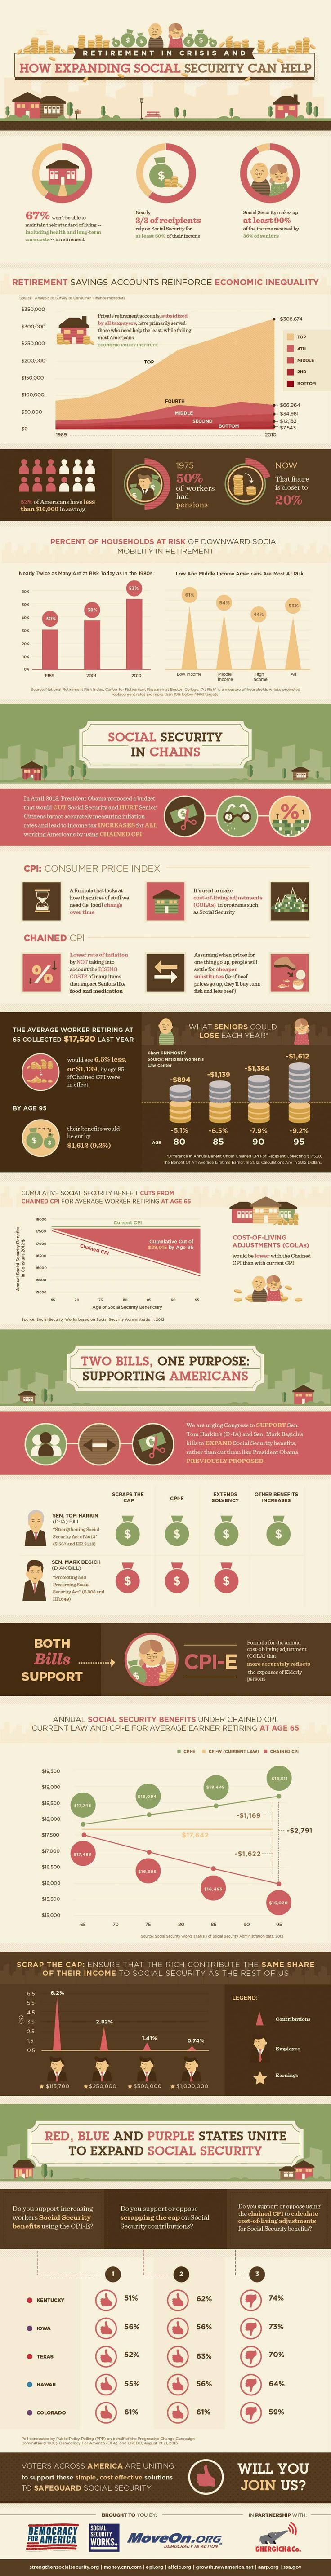 #INFOgraphic > Retirement Crisis in US: This infographic gets down to the boiling situation with the social security act of Obamacare scheme and presents how the various methods for social benefit and retirement calculation affect the annual income of beneficiaries.   > http://infographicsmania.com/retirement-crisis-in-us/?utm_source=Pinterest&utm_medium=INFOGRAPHICSMANIA&utm_campaign=SNAP